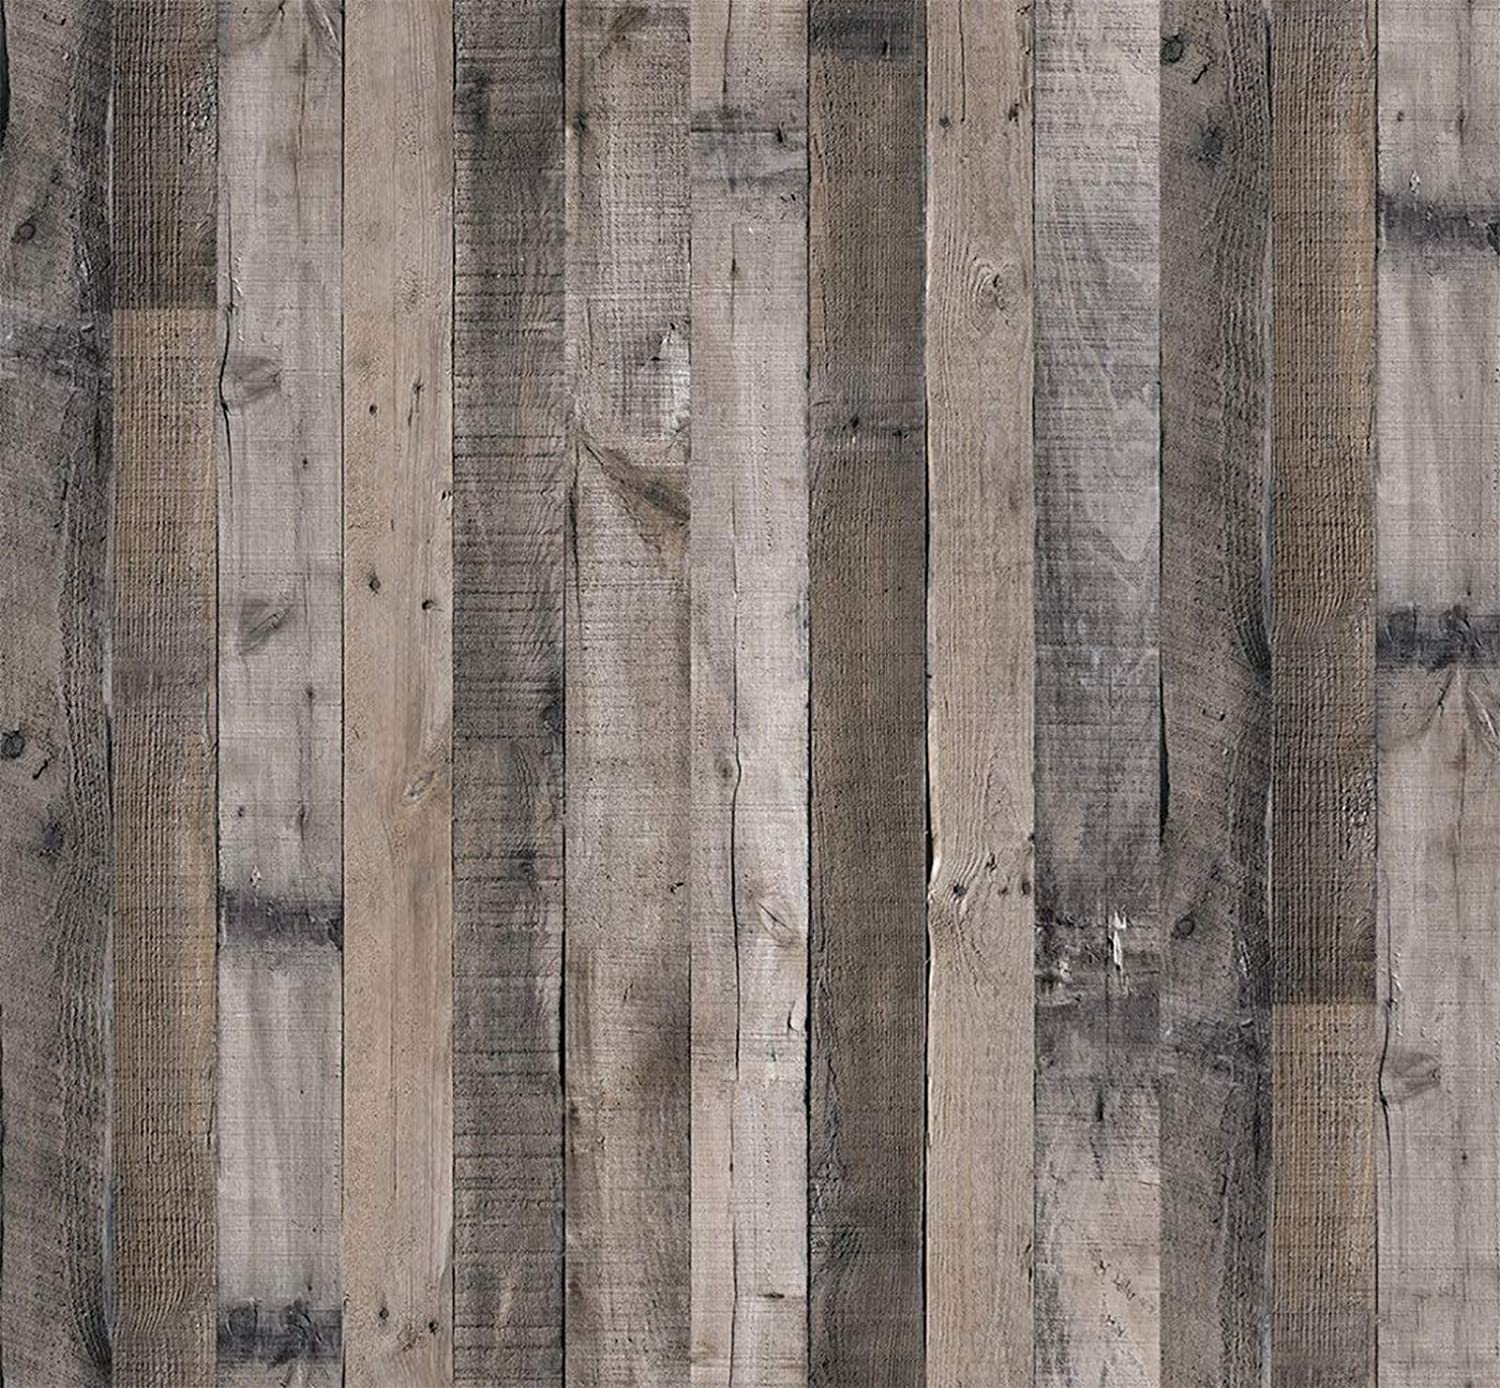 Reclaimed Wood Contact Paper Rustic Wallpaper Wood Peel and 78.7 In X 17.7 In